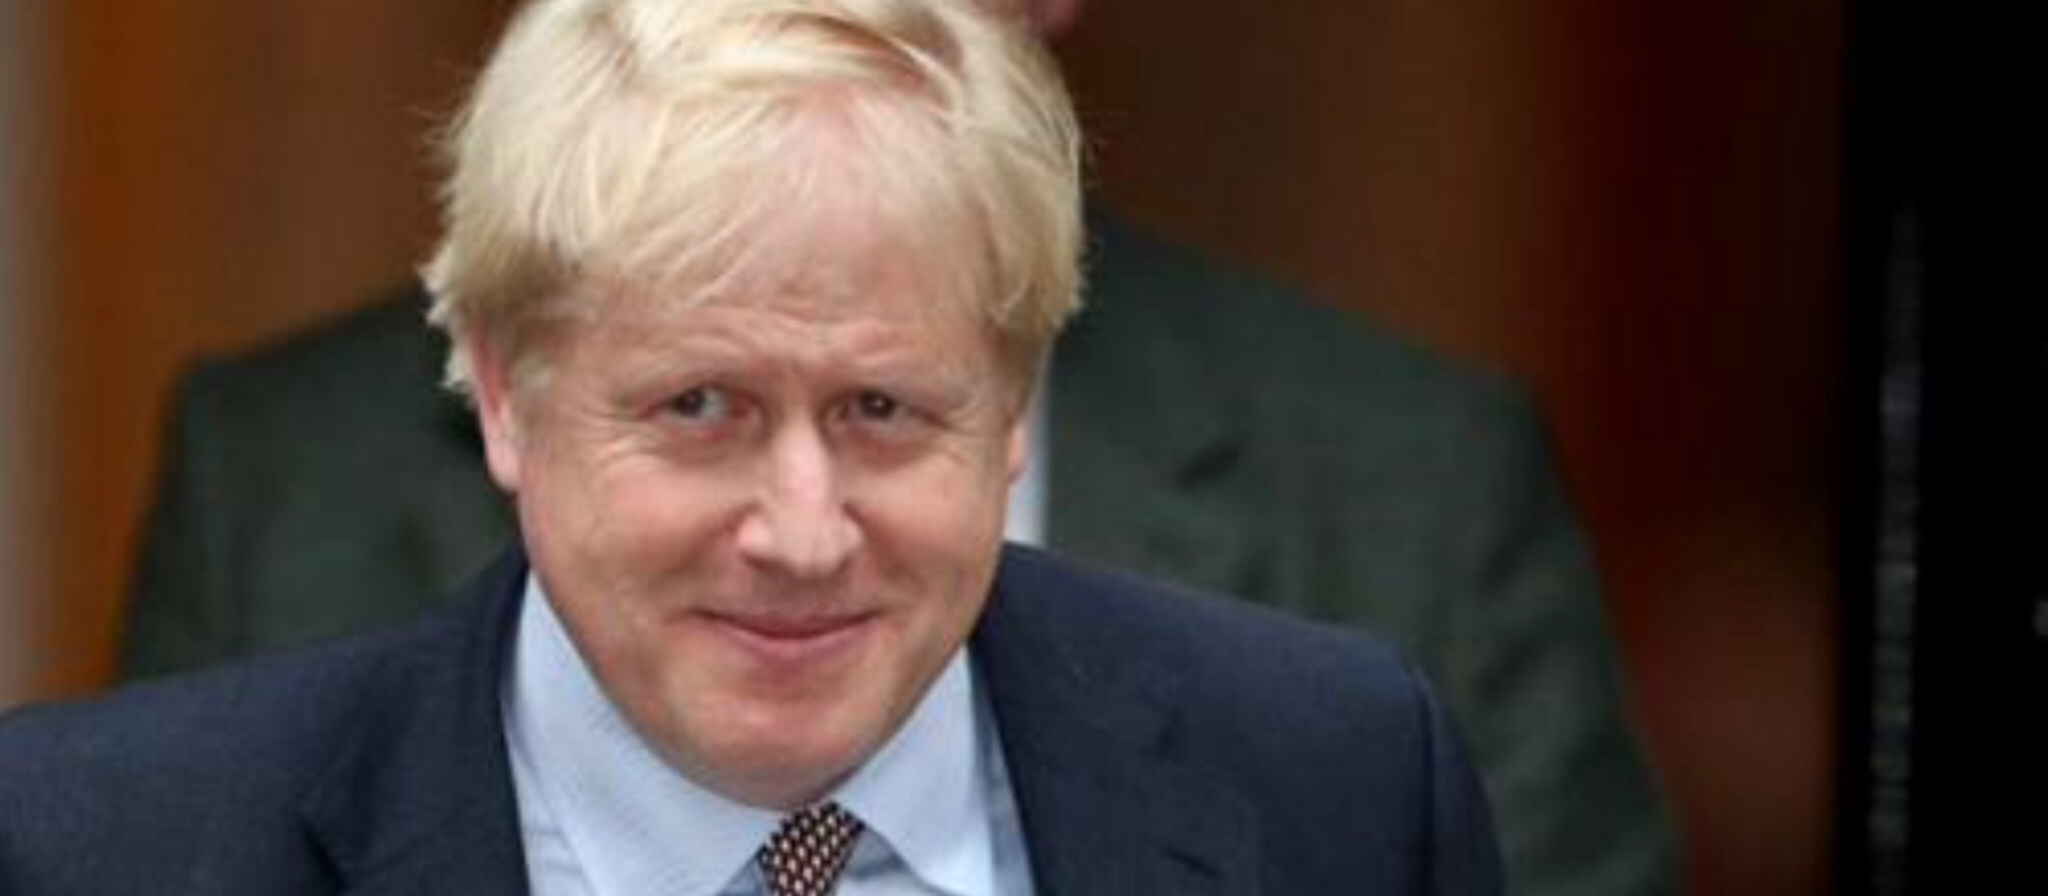 #COVID19: Boris Johnson admitted to hospital